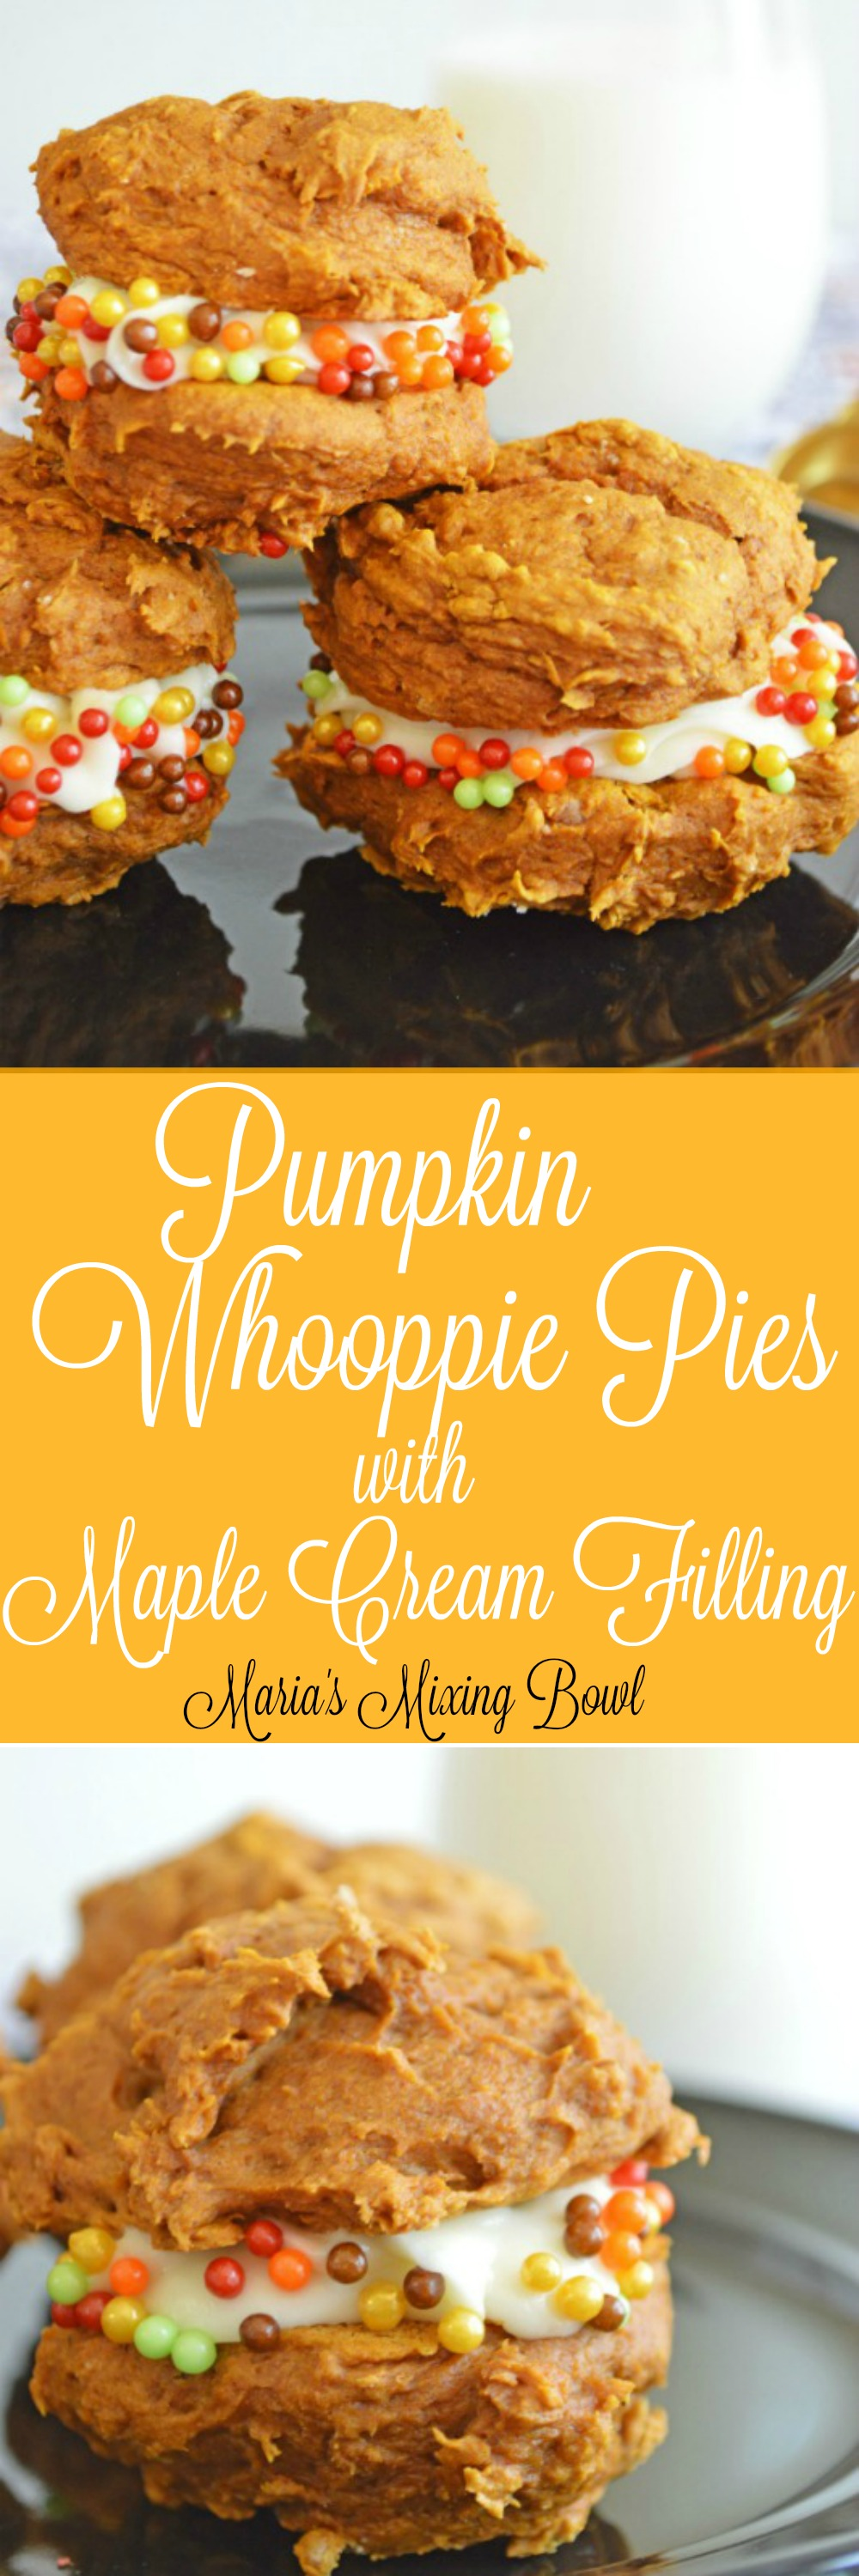 Pumpkin Whoopie Pies with Maple Cream Filling Recipe- Pumpkin Whoopie Pies with Pumpkin Cream Filling is a scrumptious Fall dessert that reminds us why pumpkin is a Fall favorite! Soft cookies make from a cake mix sandwiched together with a maple frosting.